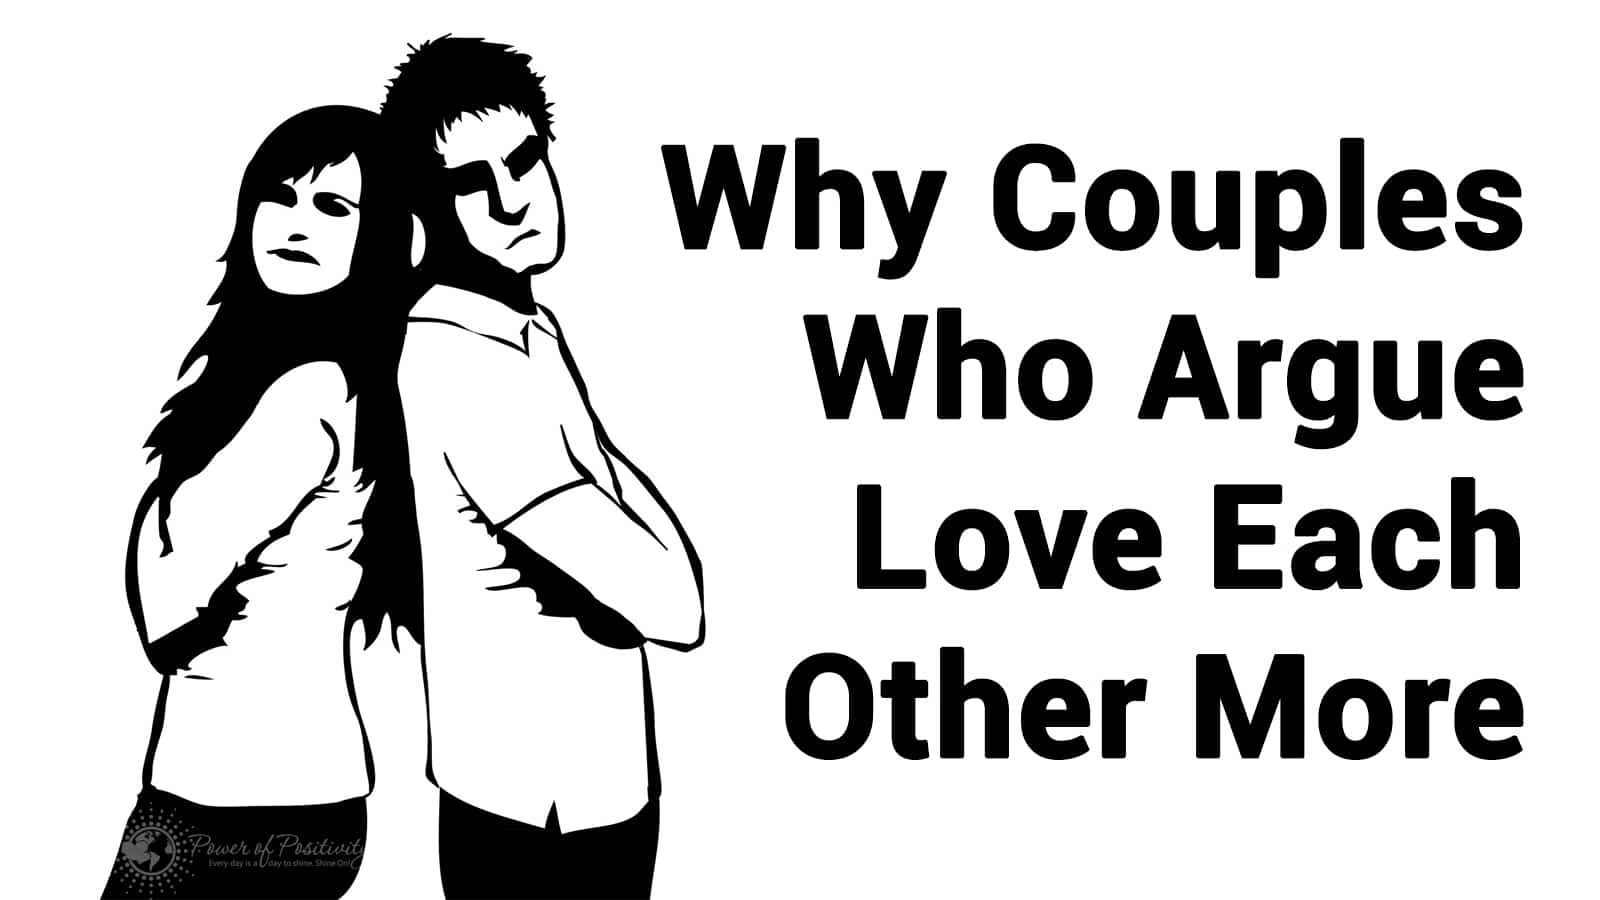 Why Couples Who Argue Love Each Other More